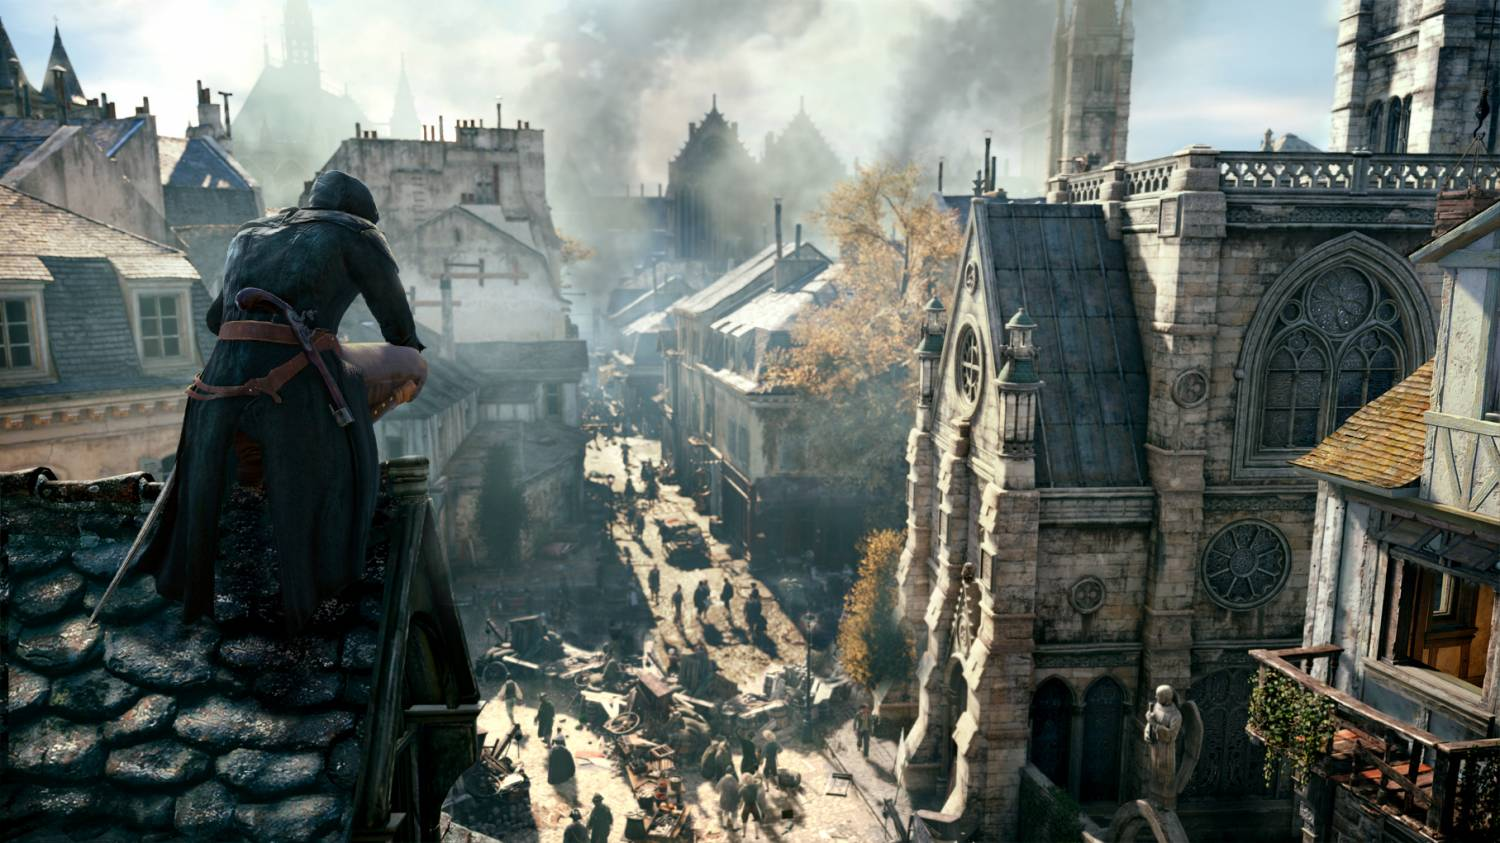 Скриншот Assassin's Creed: Unity, обои